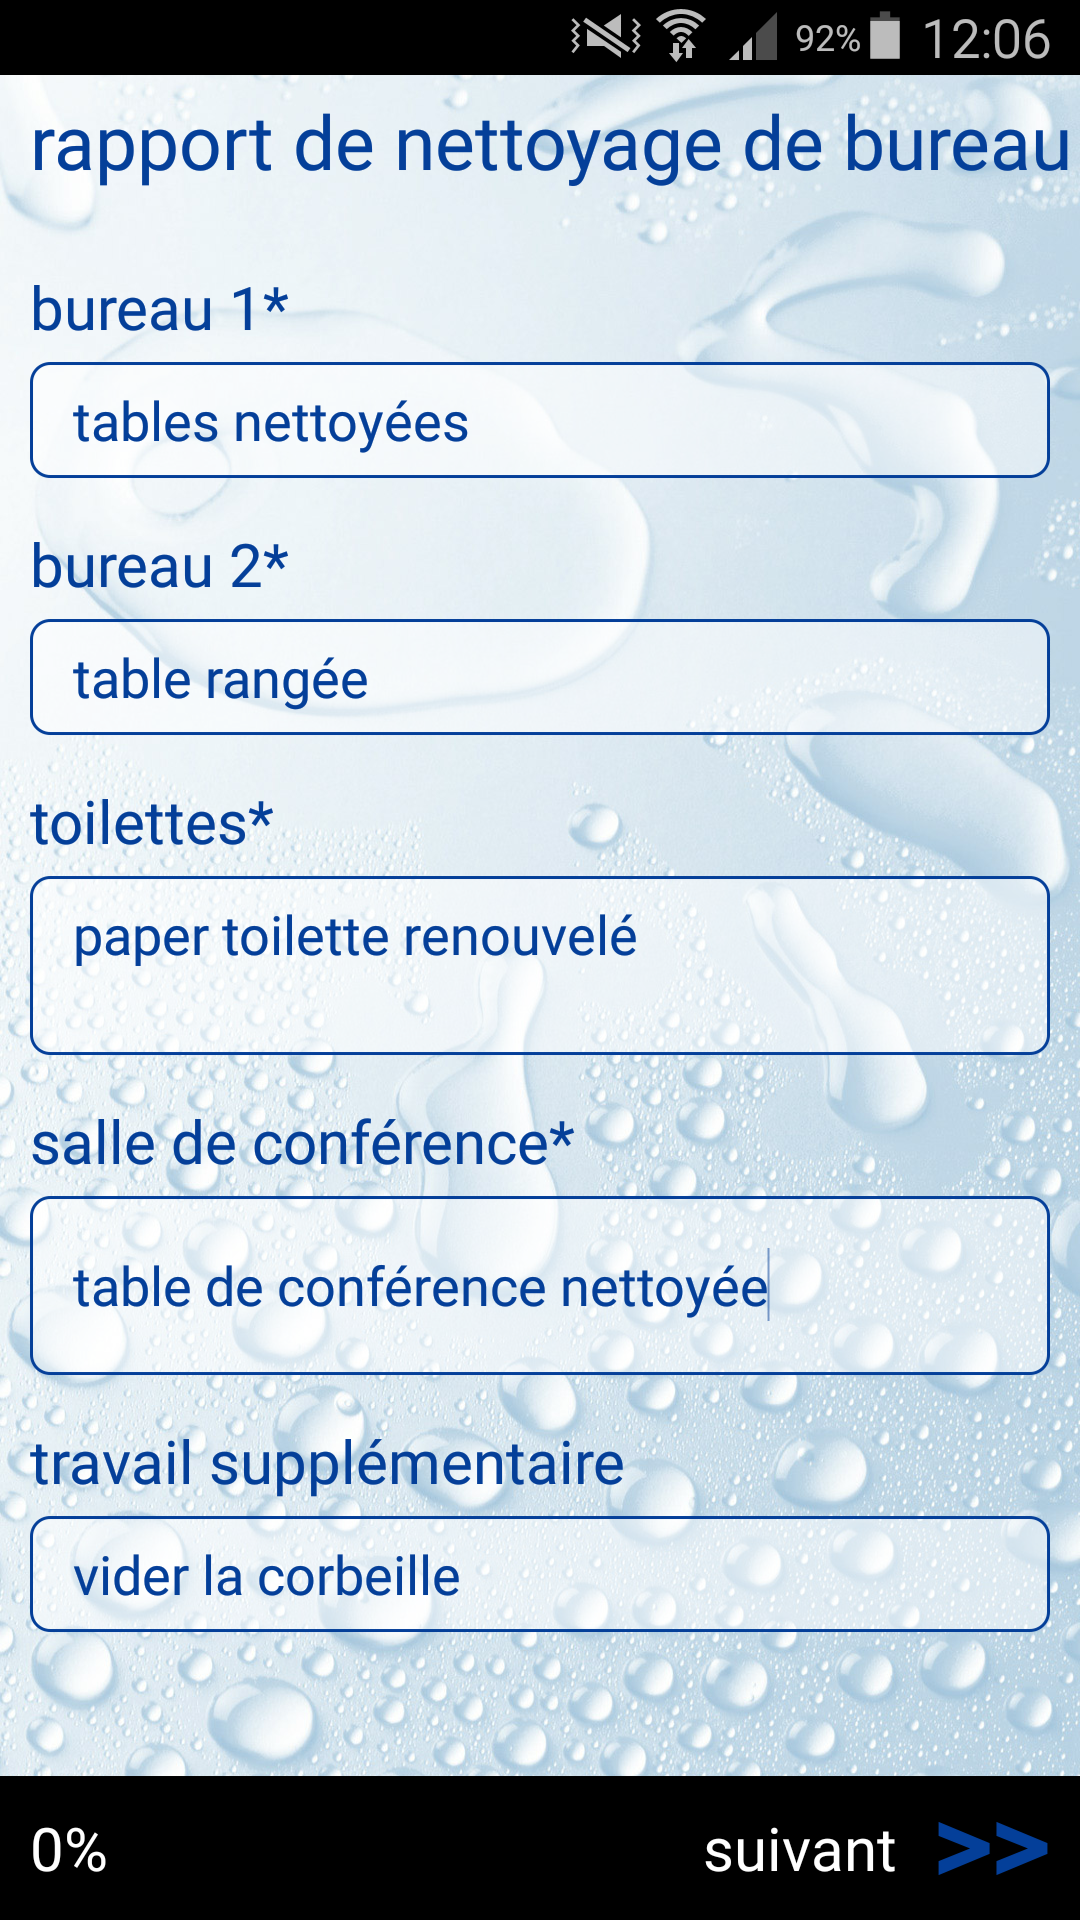 ginstr_app_officeCleaningReport_FR_3